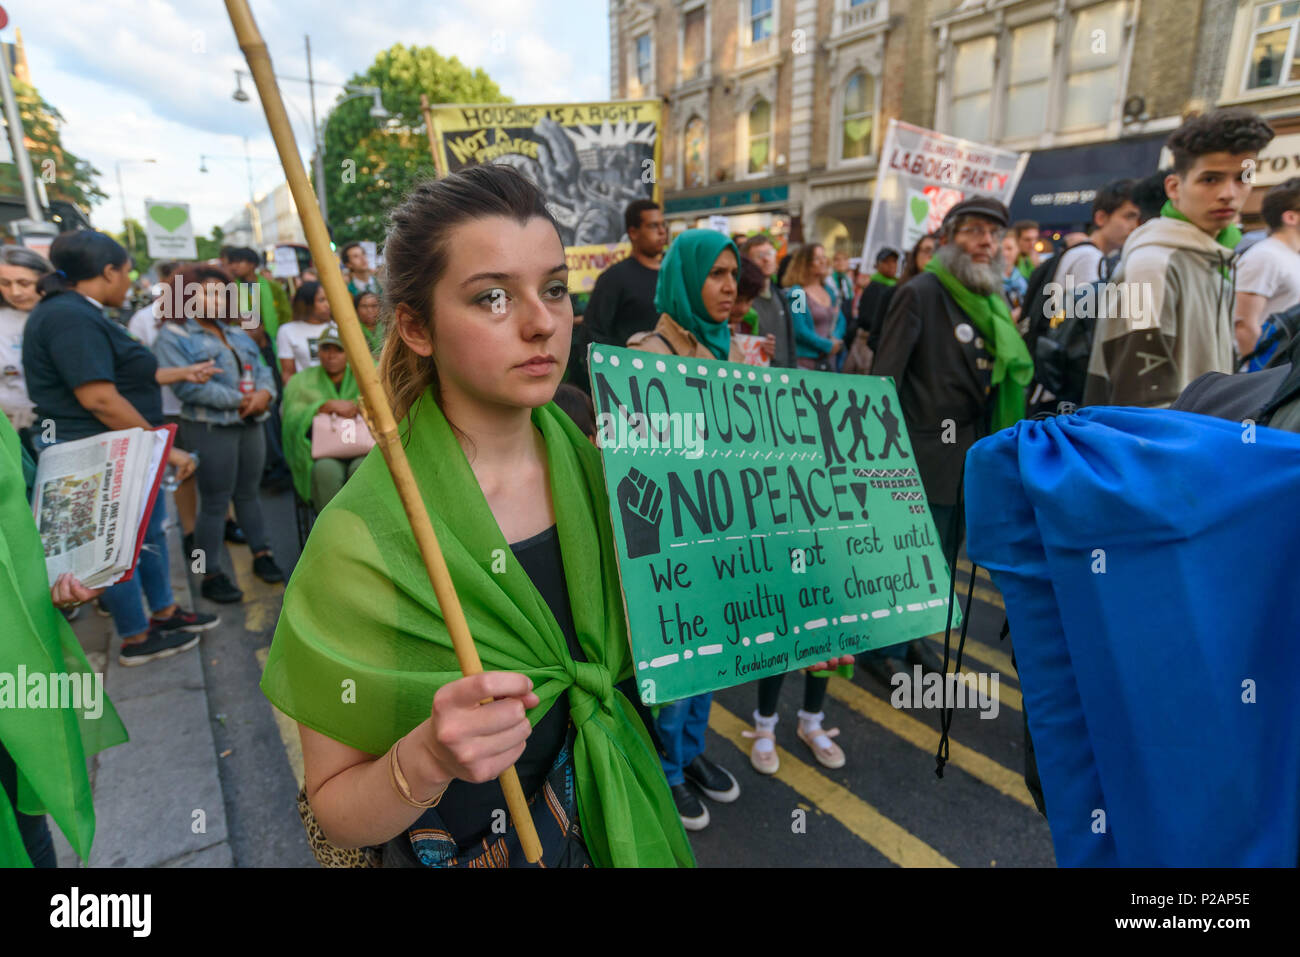 London, UK. 14th June 2018. A woman holds a poster 'No Justice No Peace' as she walks with thousands in silence along Ladbroke Grove remembering the victims of the disaster on the first anniversary of the disastrous fire which killed 72 and left survivors traumatised. Many of those made homeless by the fire are still in temporary accomodation a year later despite promises mde by Theresa May and Kensington & Chelsea council, who many fell have failed the local community both before and after the fire.  call for Credit: Peter Marshall/Alamy Live News - Stock Image